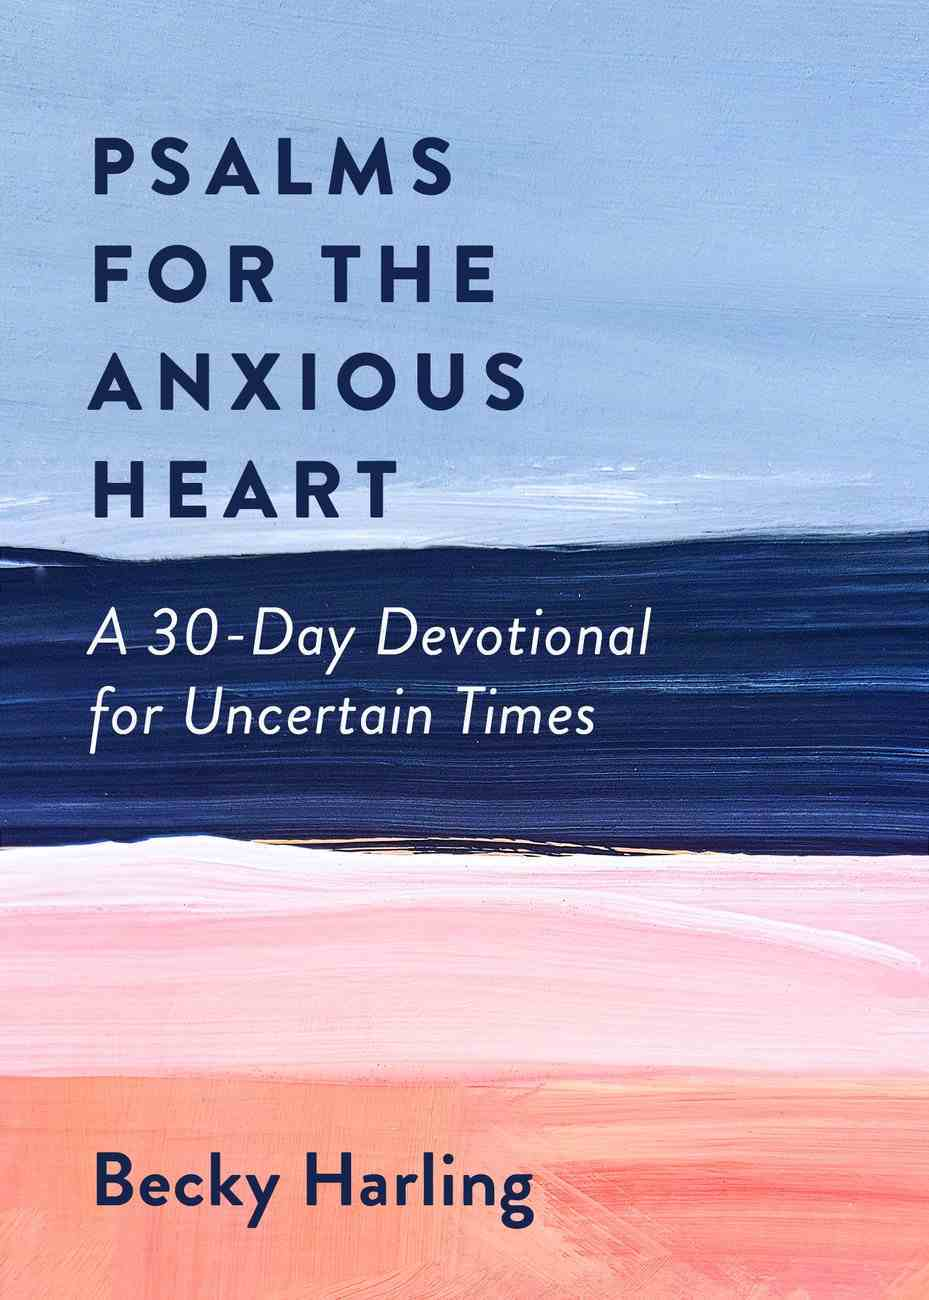 Psalms For the Anxious Heart: A 30-Day Devotional For Uncertain Times Paperback